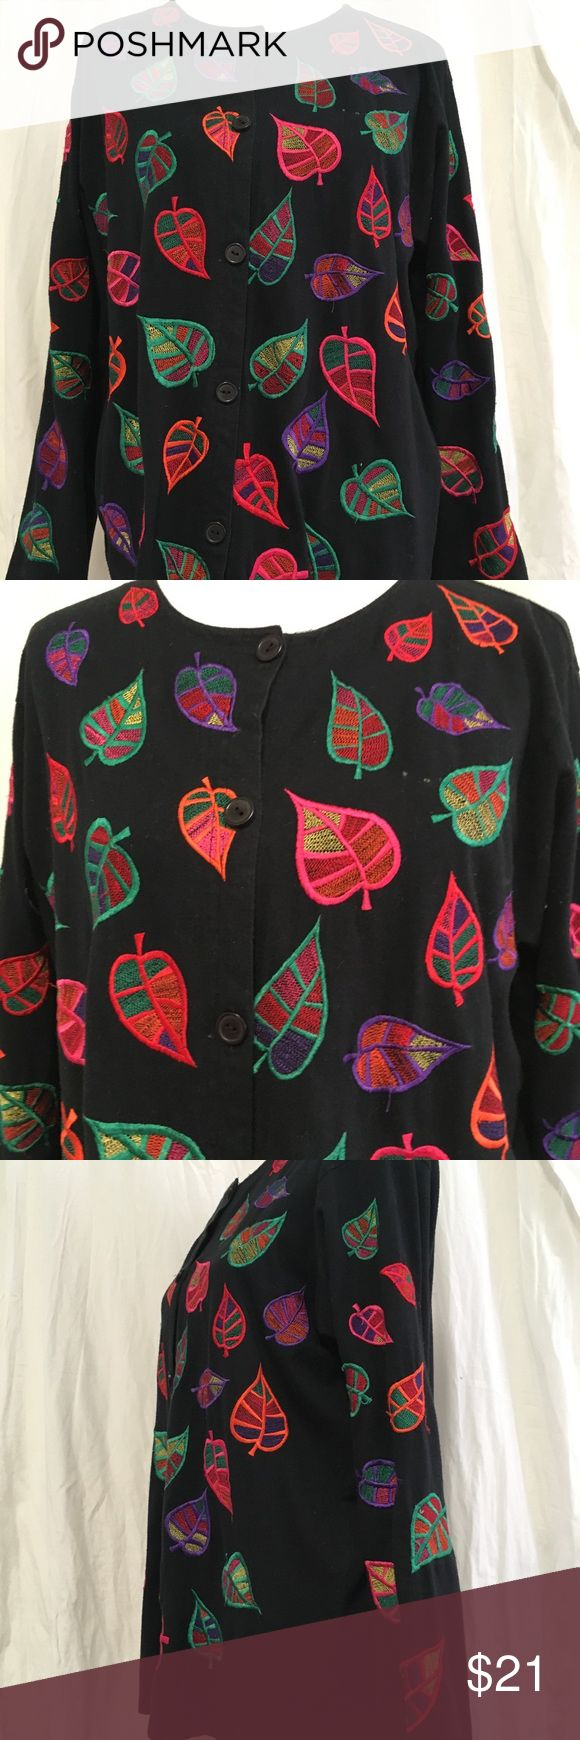 Michael Simon Button Down Top L Embroidered leaves MICHAEL SIMON LITE  Jacket  Long Sleeves  Multi Color leaves embroidery Size L  Fabric:  100% Cotton   Measurements  Length:  28 inches  Bust   46 inches  Waist 46 inches  Hips 46 inches Michael Simon Tops Button Down Shirts